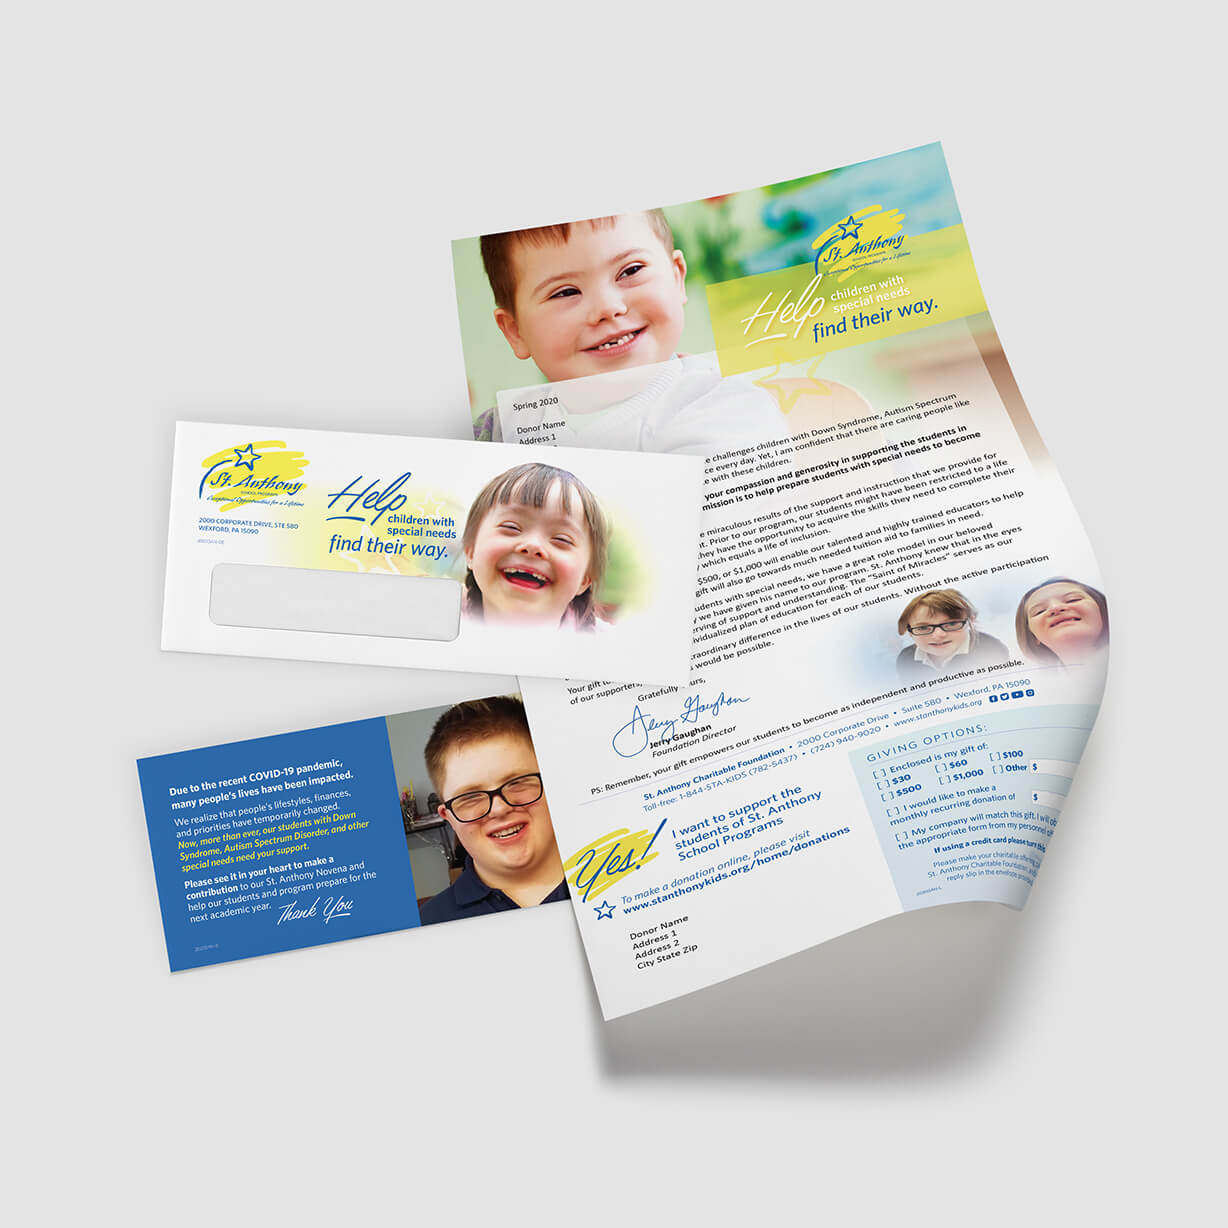 Mail campaign: Faith-based school for special-needs kids requests donations